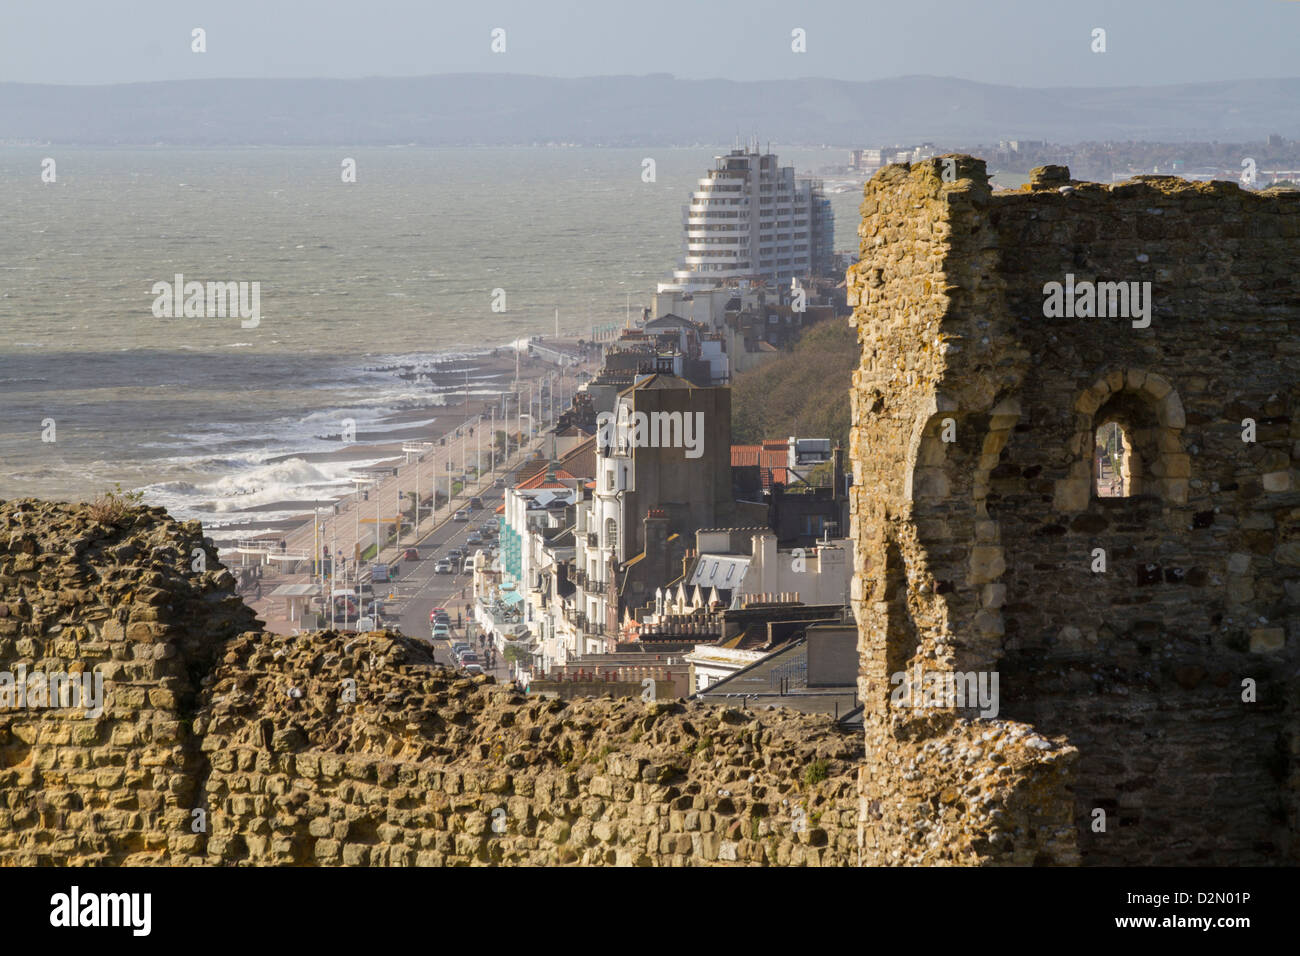 View from castle, Hastings, Sussex, England, United Kingdom, Europe - Stock Image